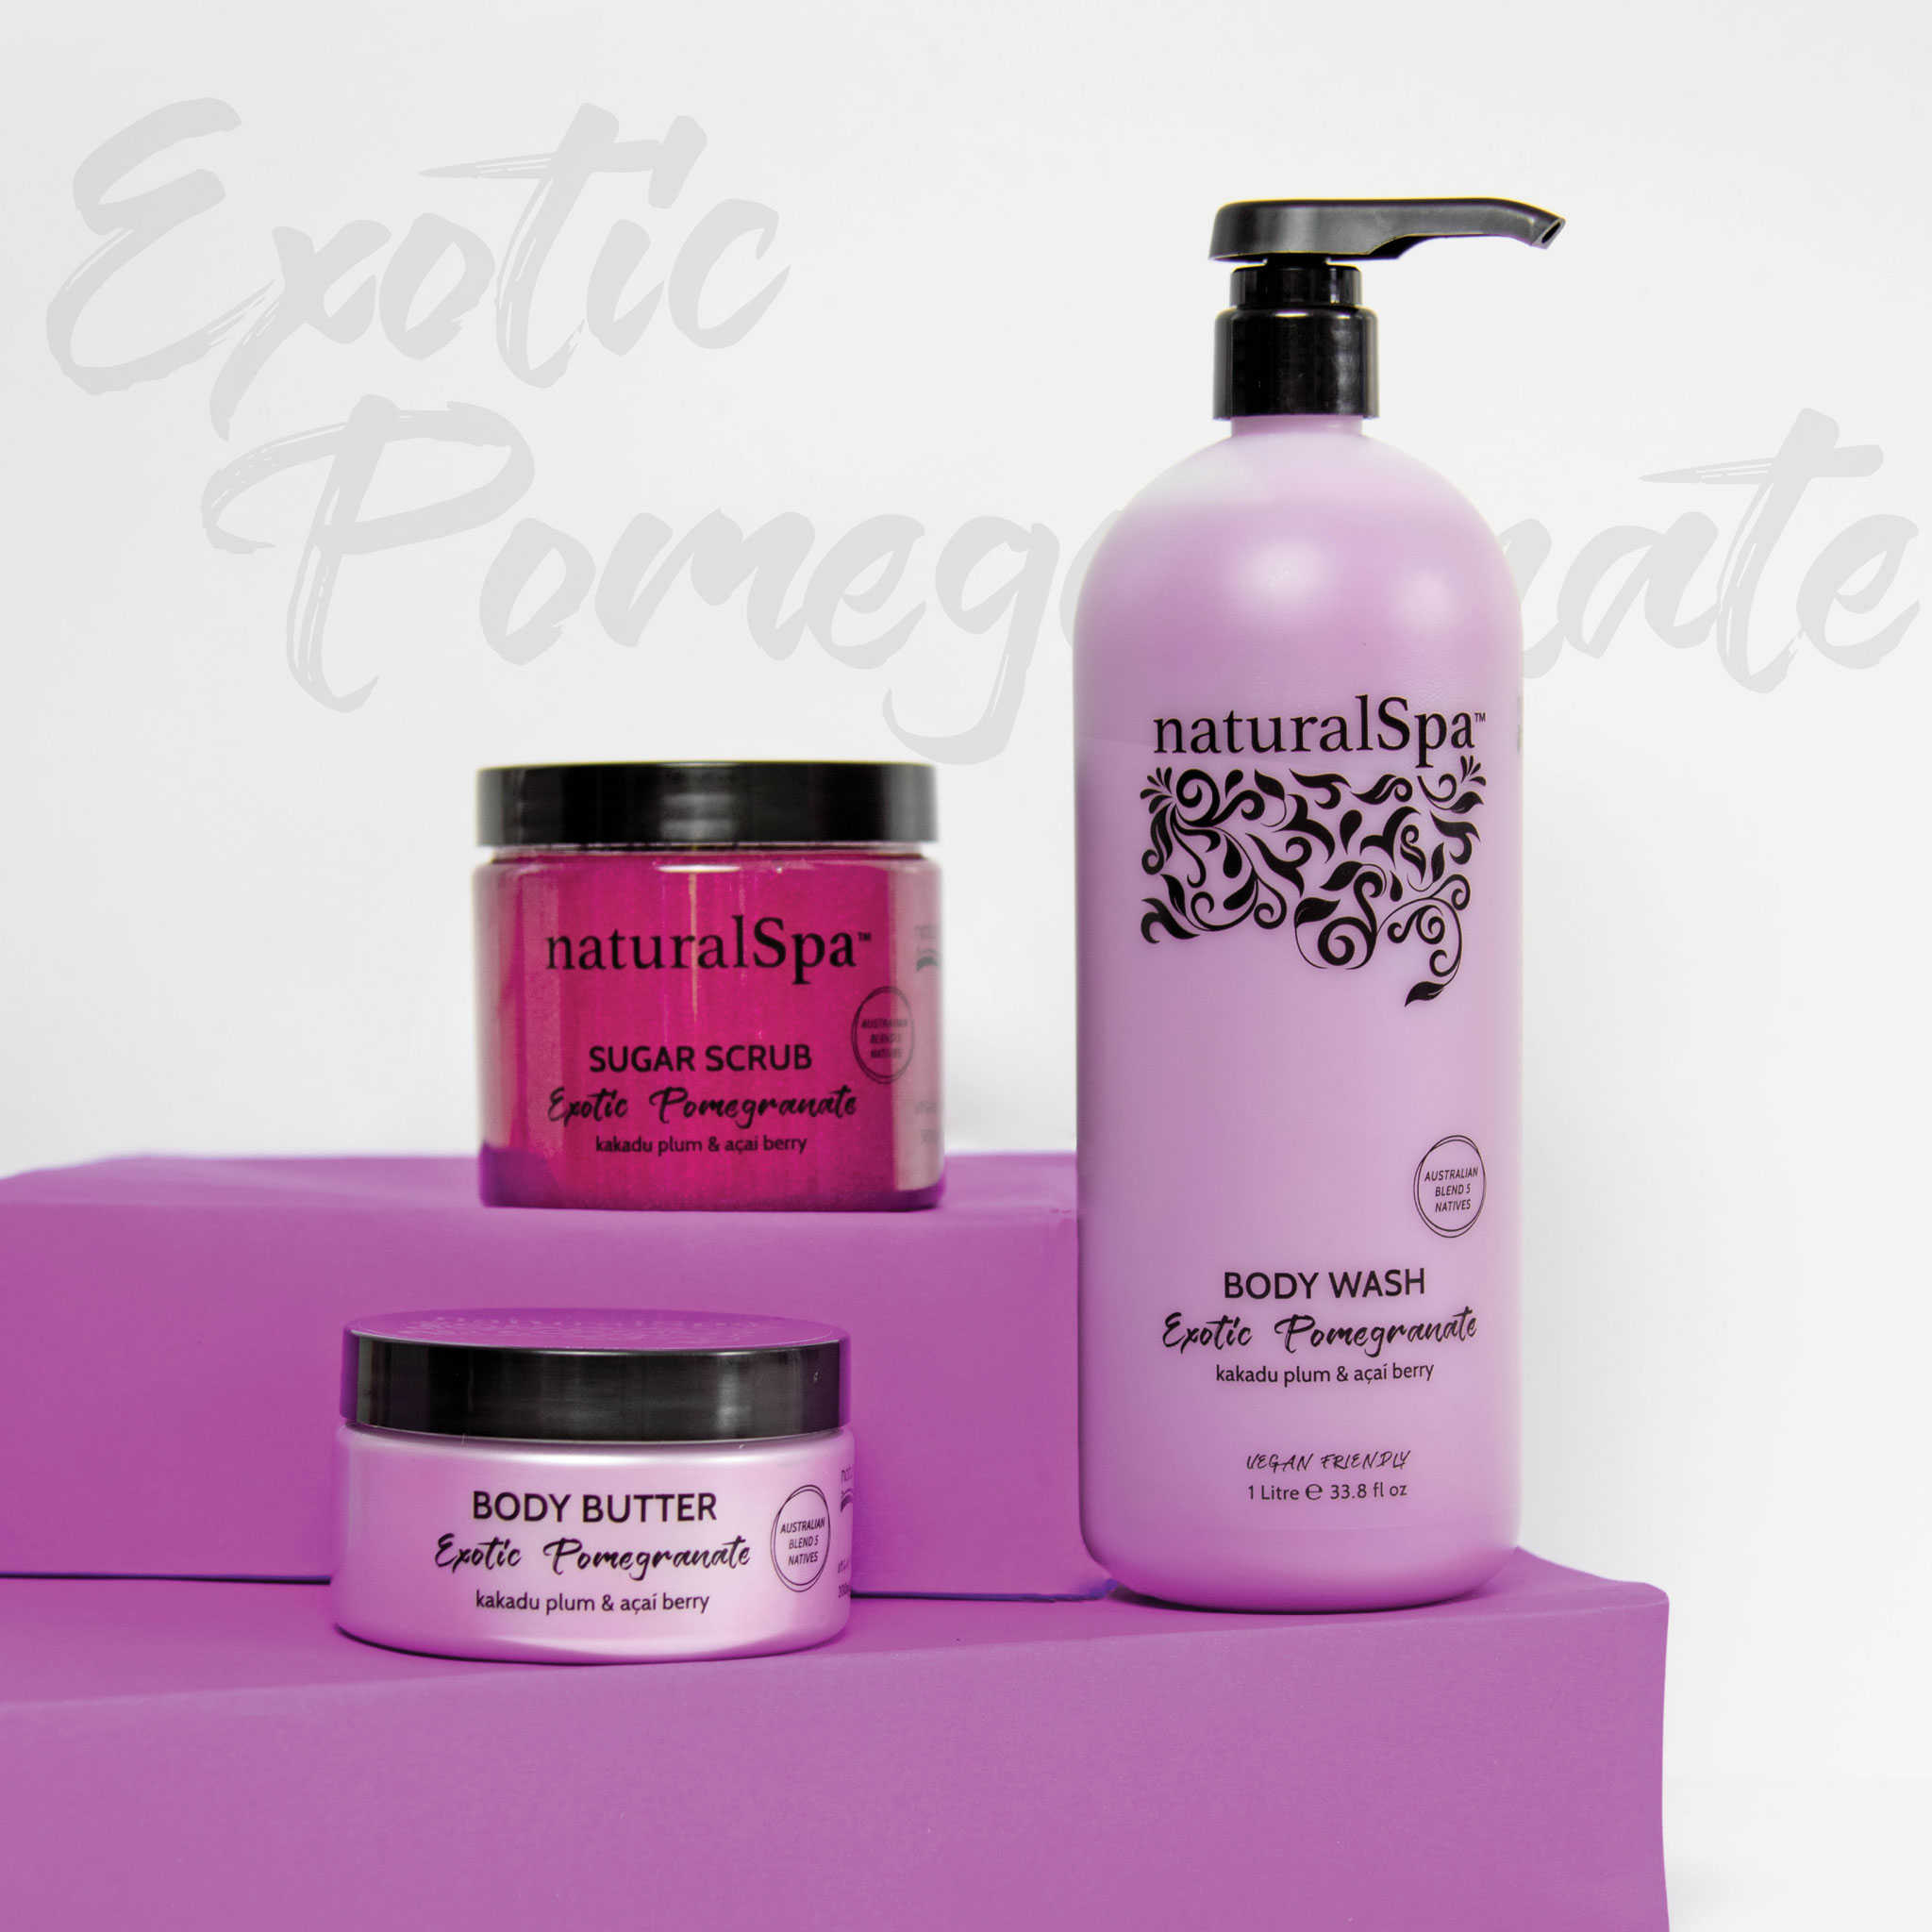 Exotic Pomegranate Products image